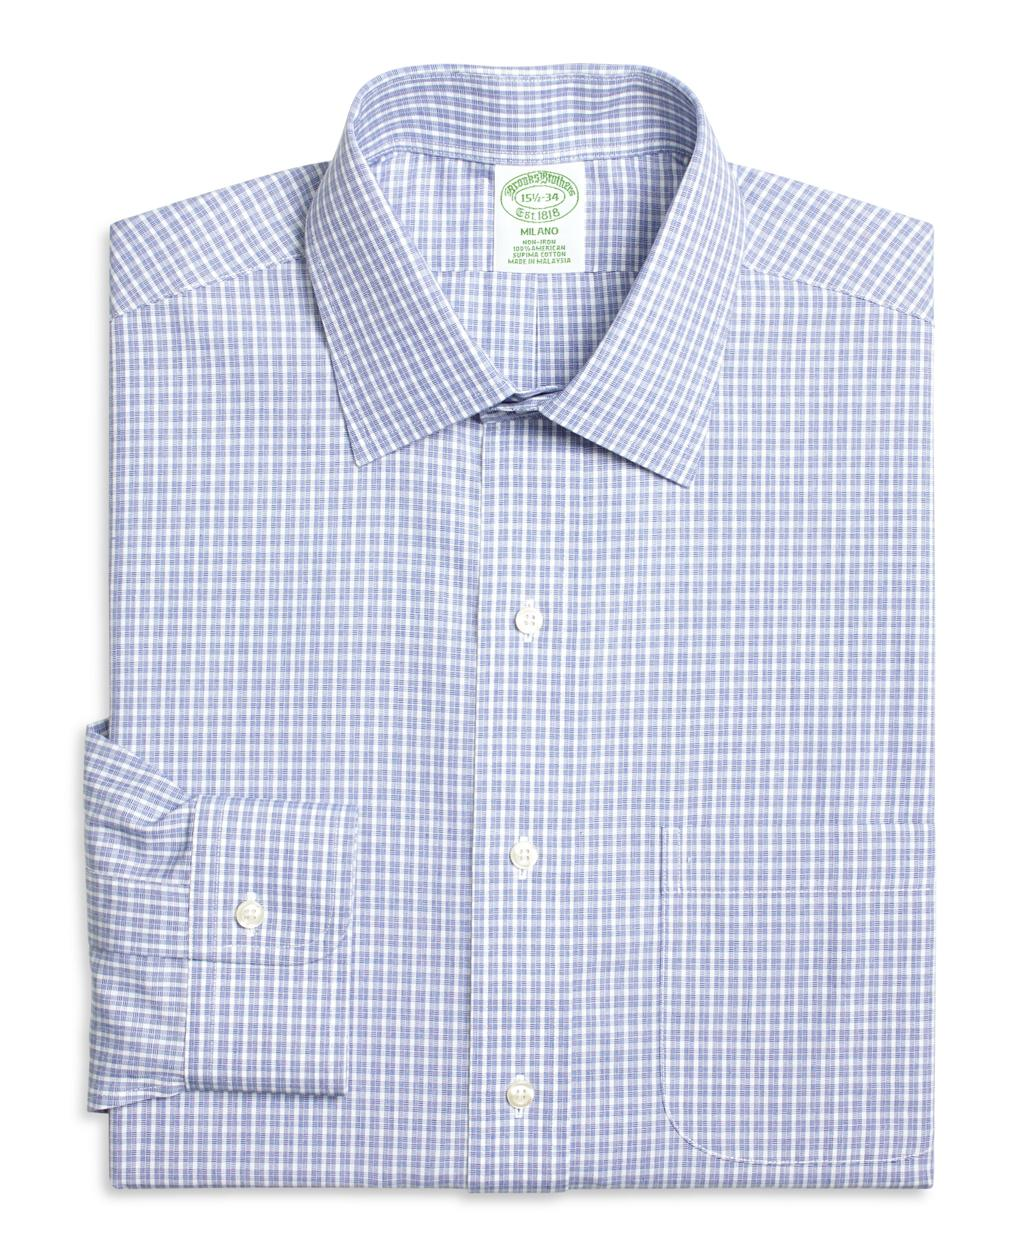 Brooks brothers non iron milano fit parquet check dress for Brooks brothers non iron shirts review